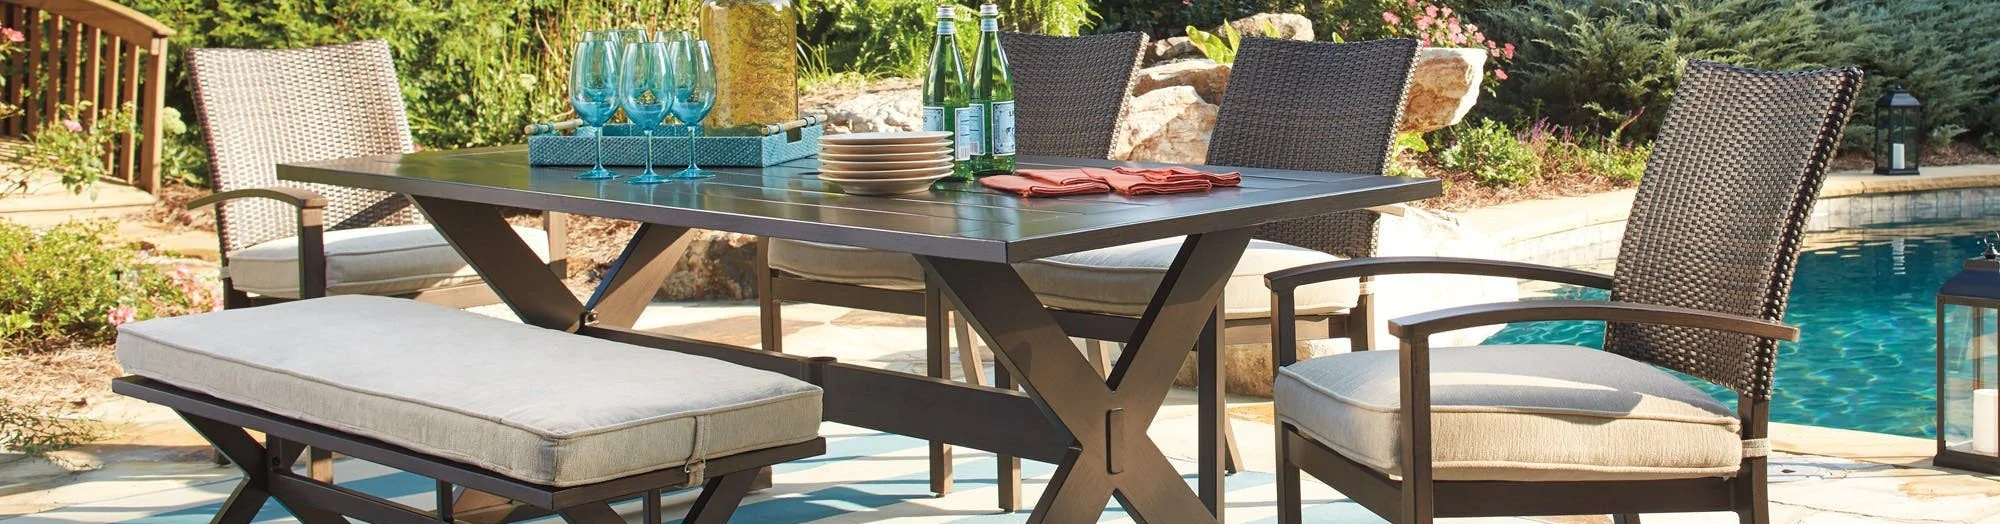 Outdoor Furniture Fair Cincinnati Dayton Louisville - Outdoor Furniture Clearance Houston